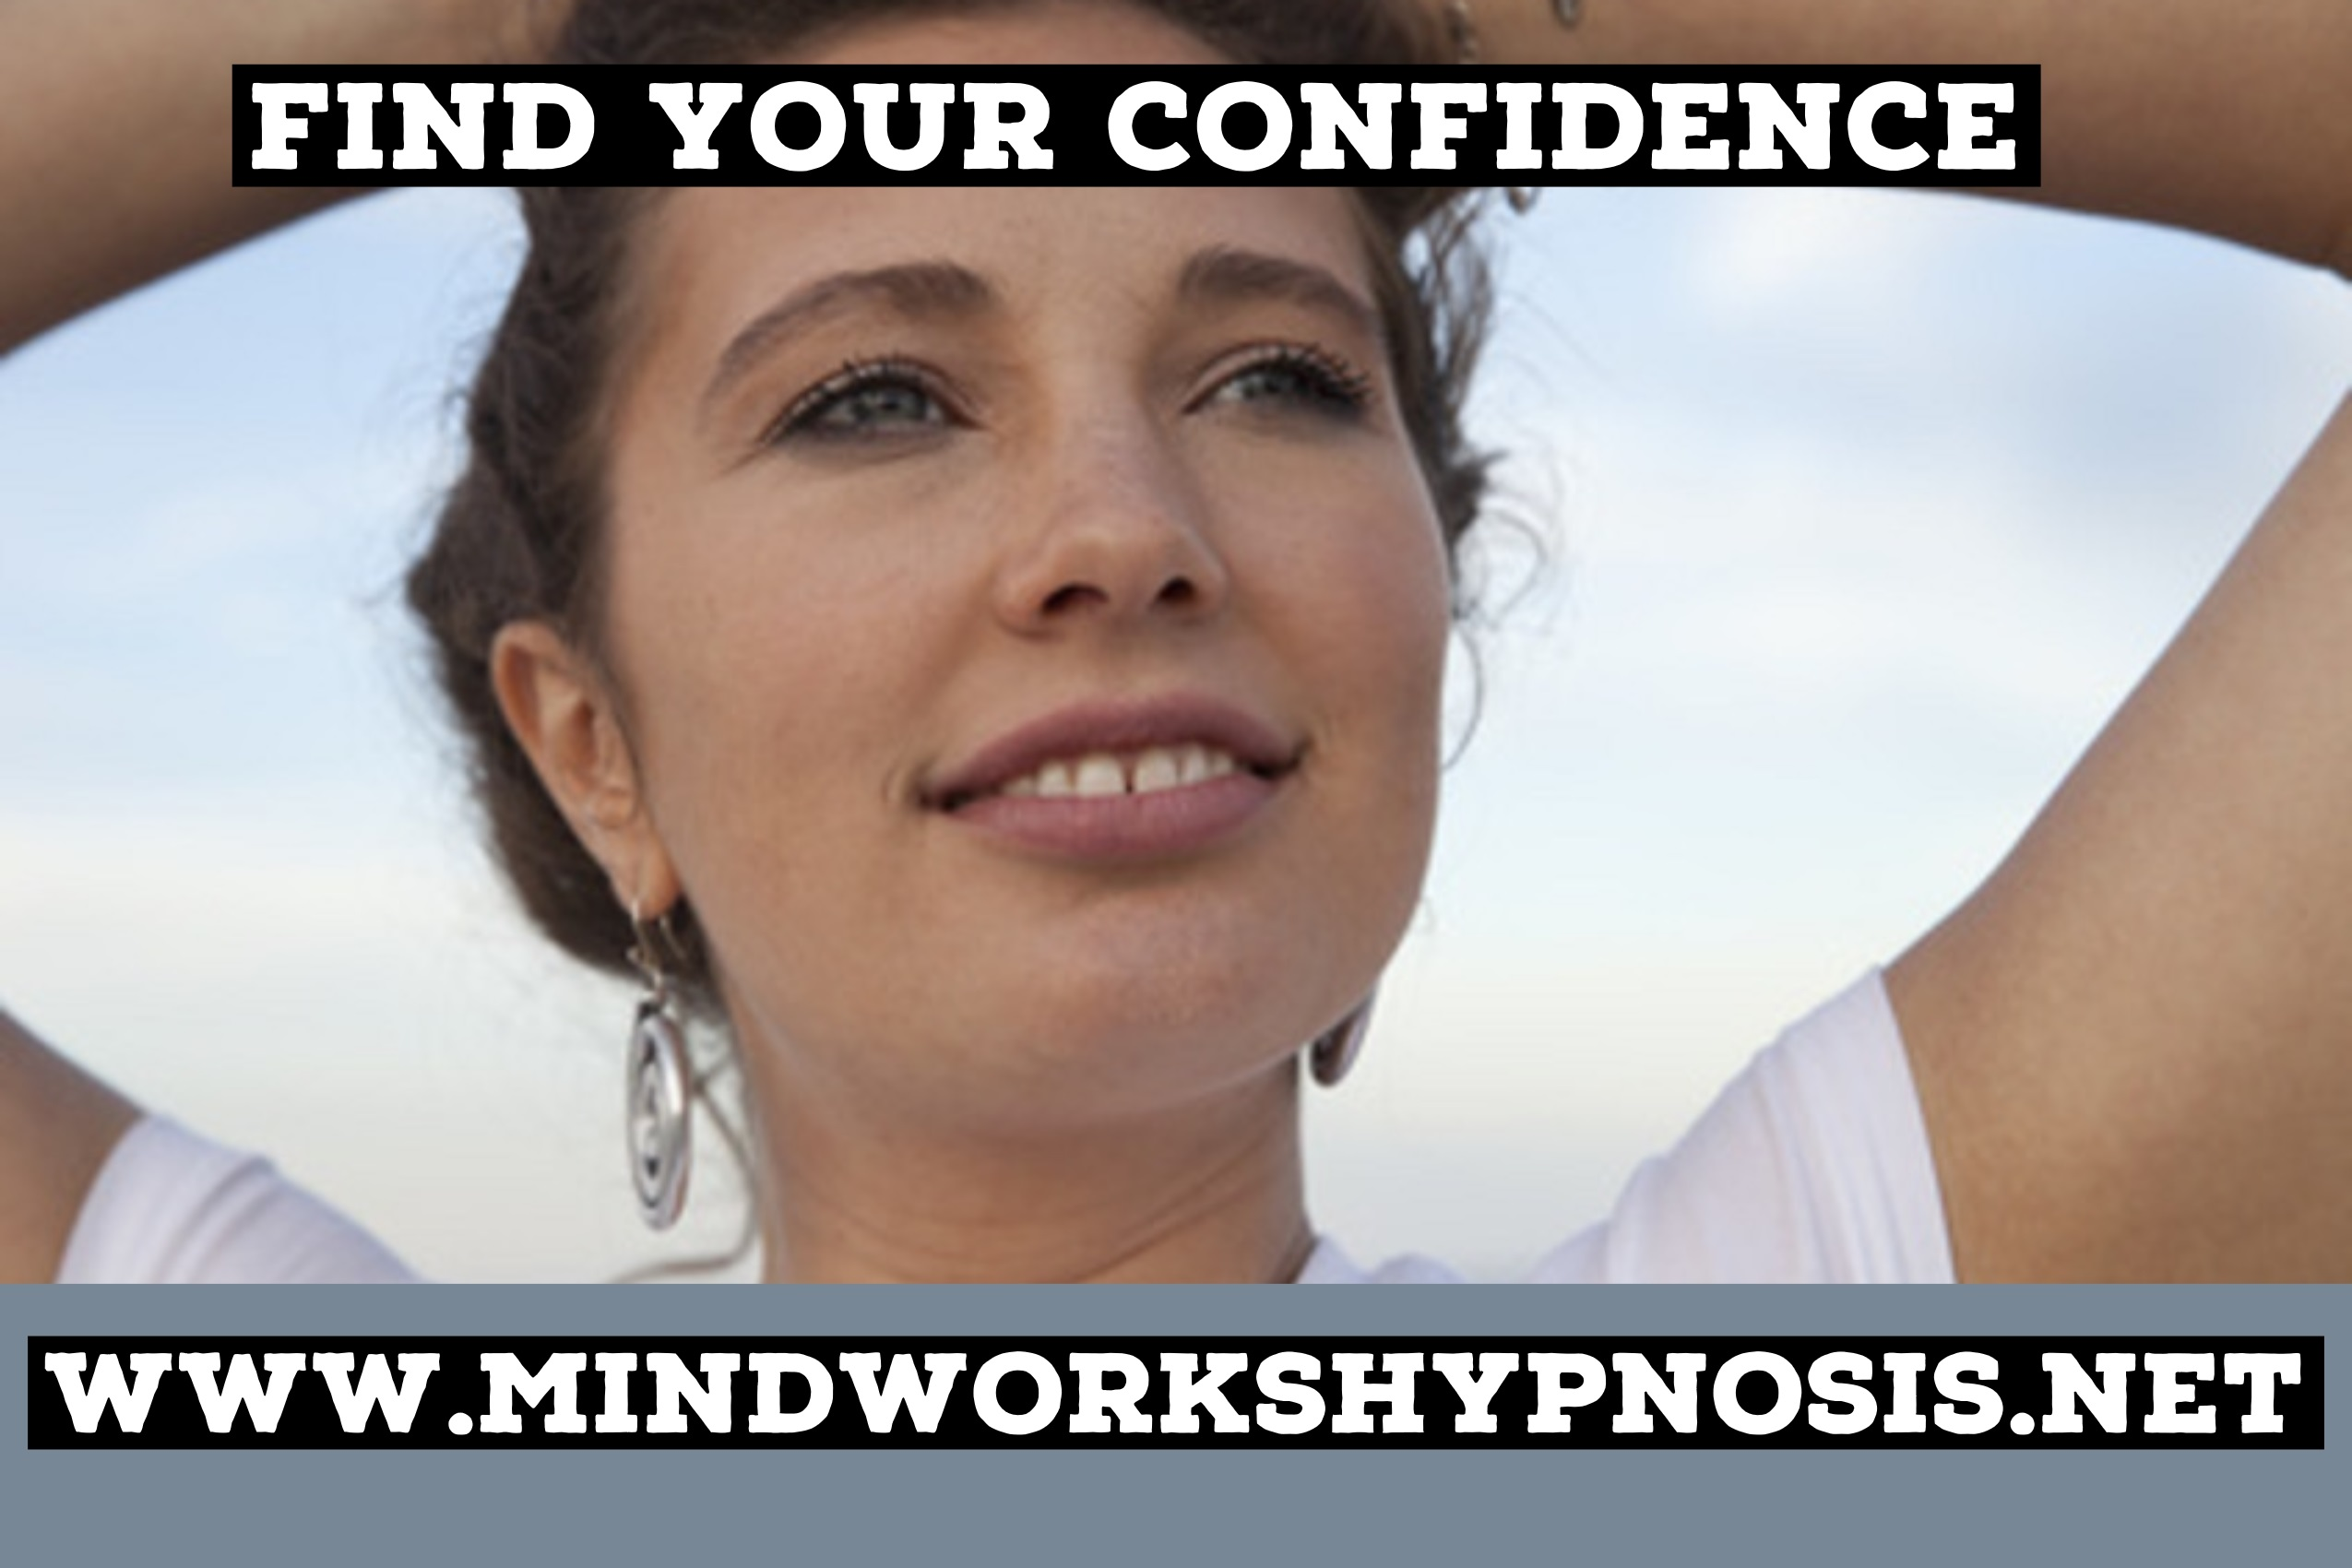 Find Your Confidence with Mindworks Hypnosis & NLP.